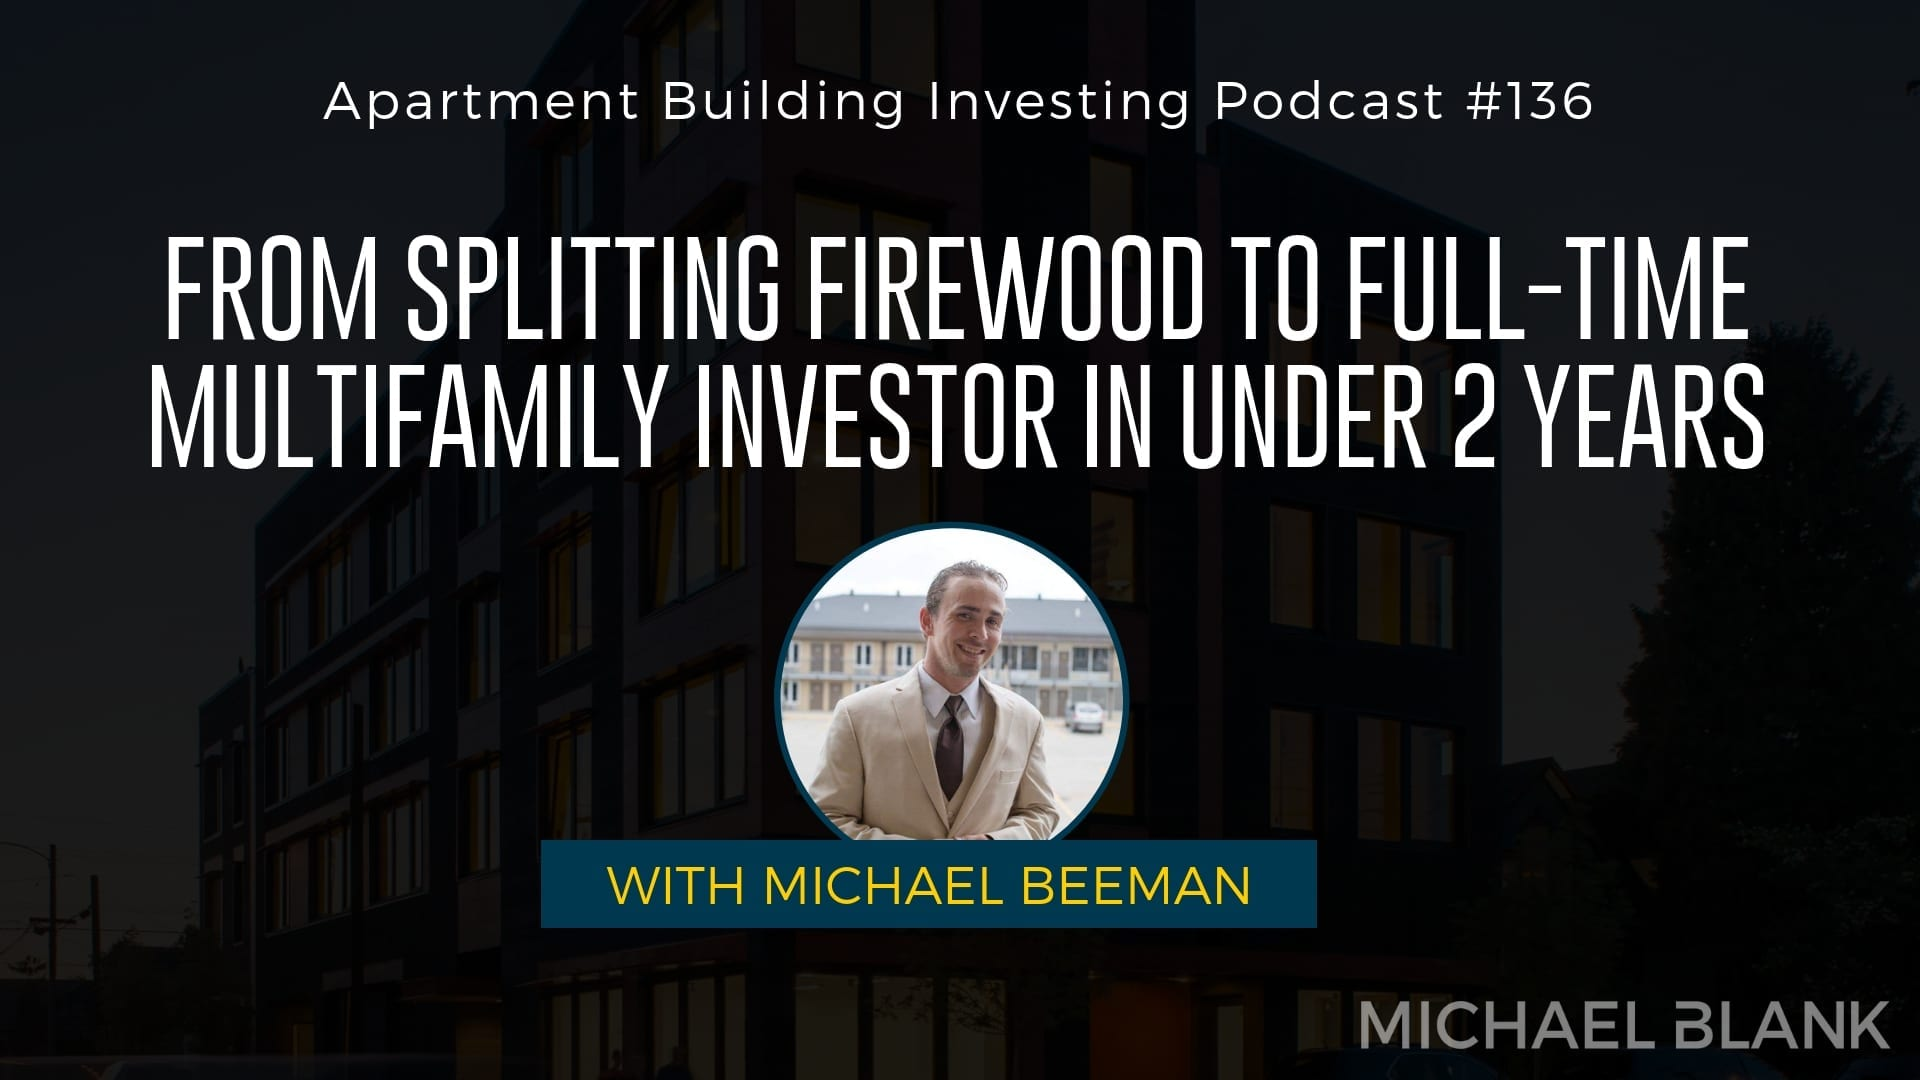 MB 136: From Splitting Firewood to Full-Time Multifamily Investor in Under 2 Years – With Michael Beeman